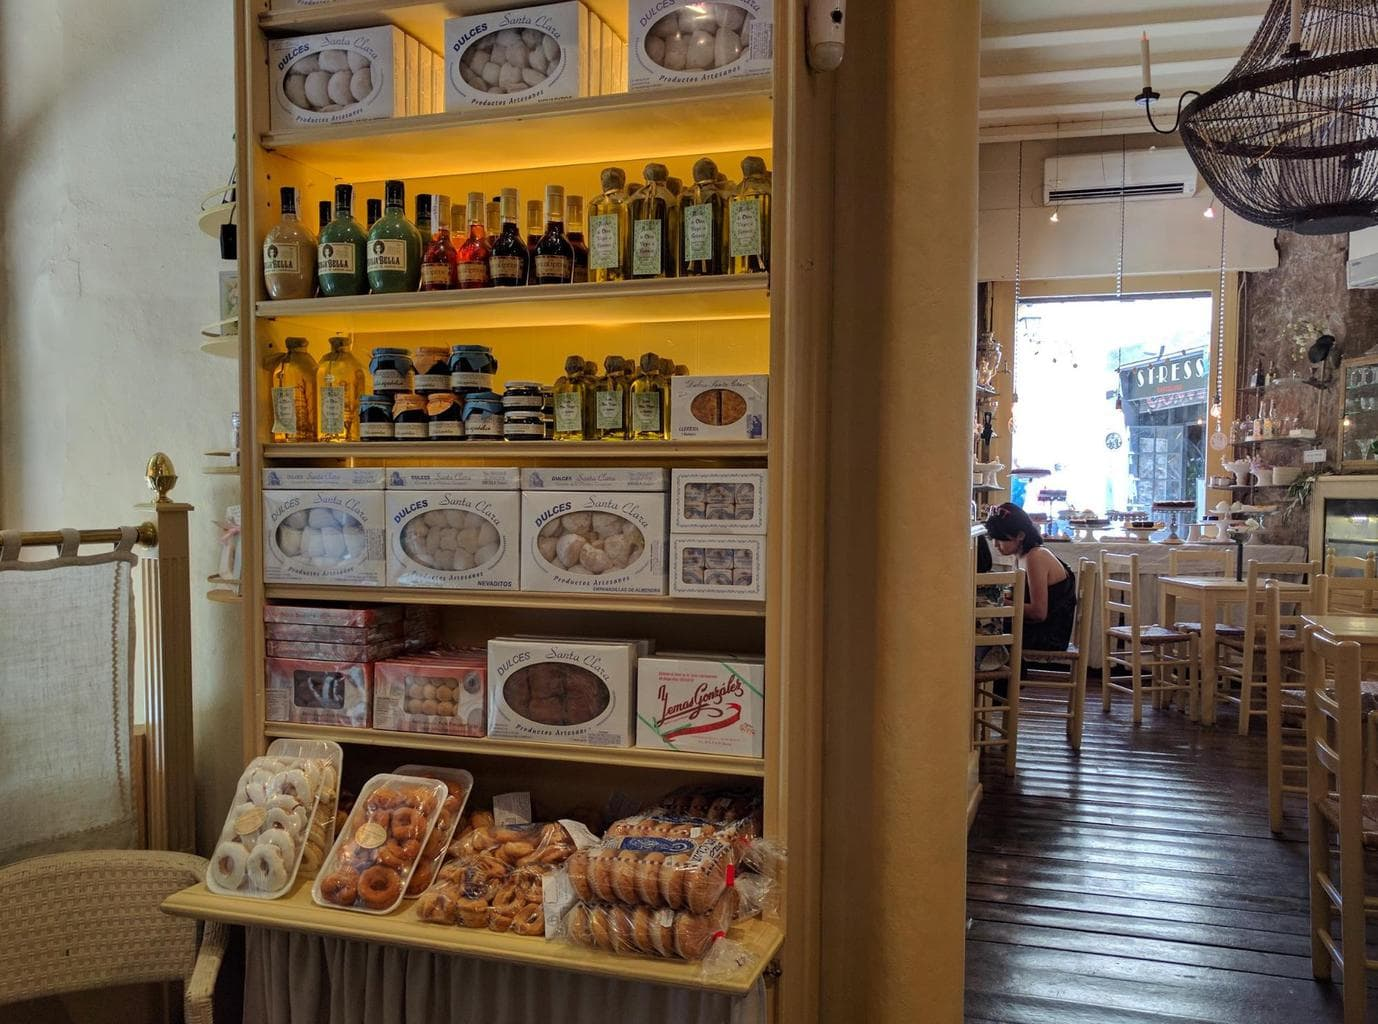 Caelum celestial sweets and liquors in Barcelona